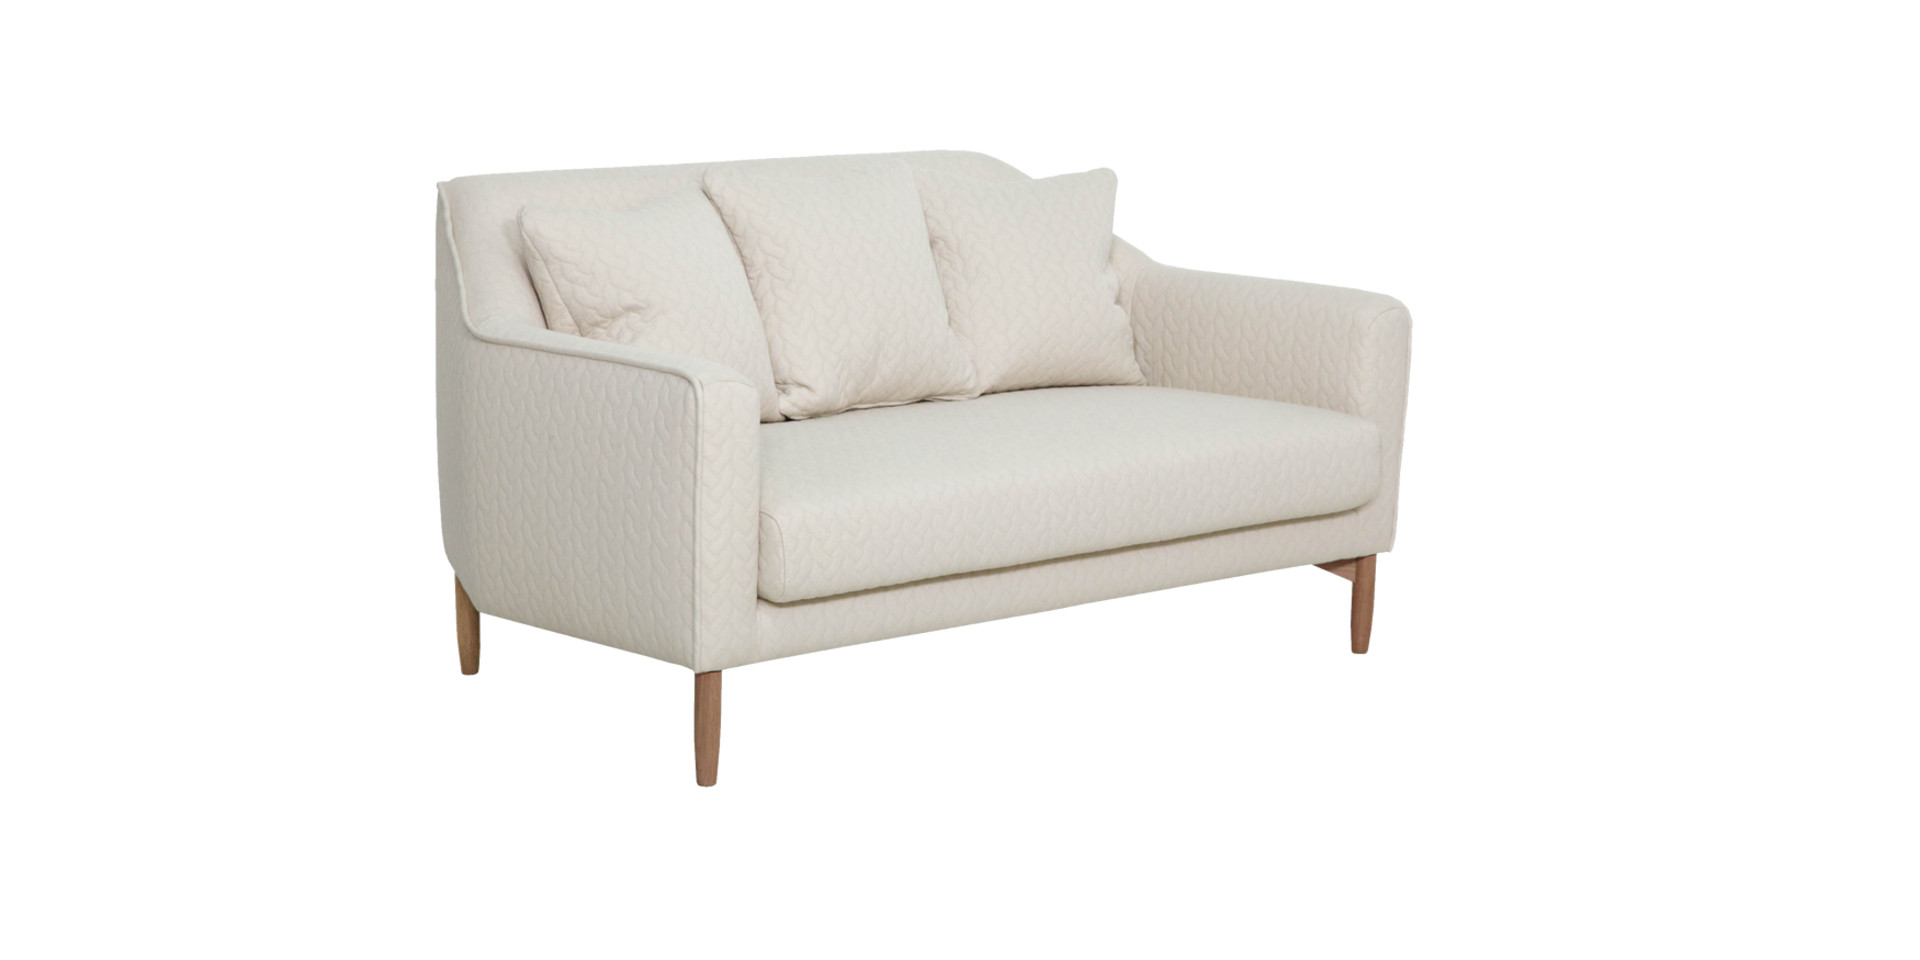 sits-ivy-canape-2seater_zara01_natur_2